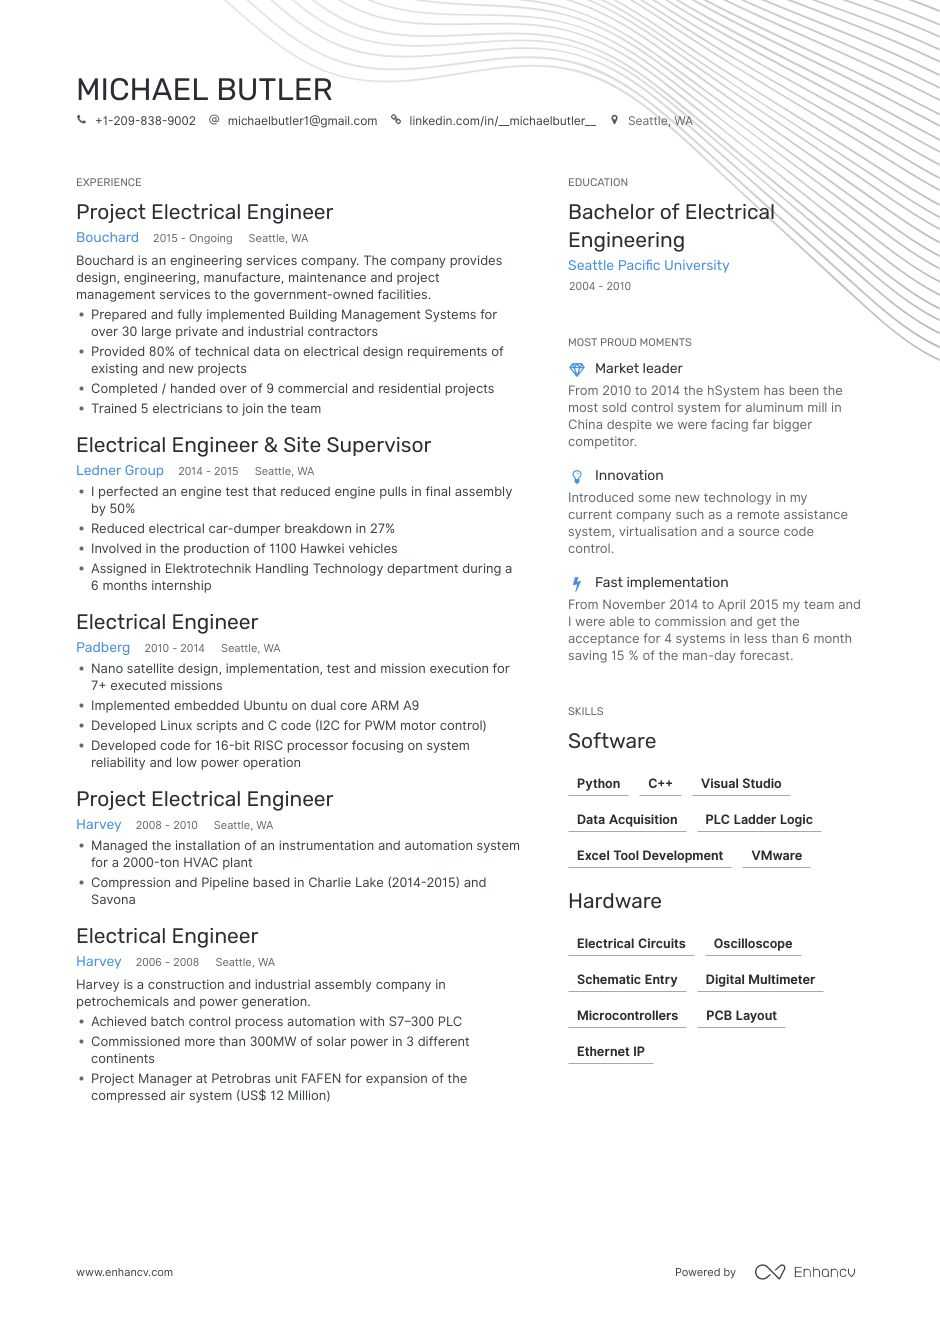 electrical engineer resume examples pro tips featured enhancv graduate template Resume Graduate Engineer Resume Template